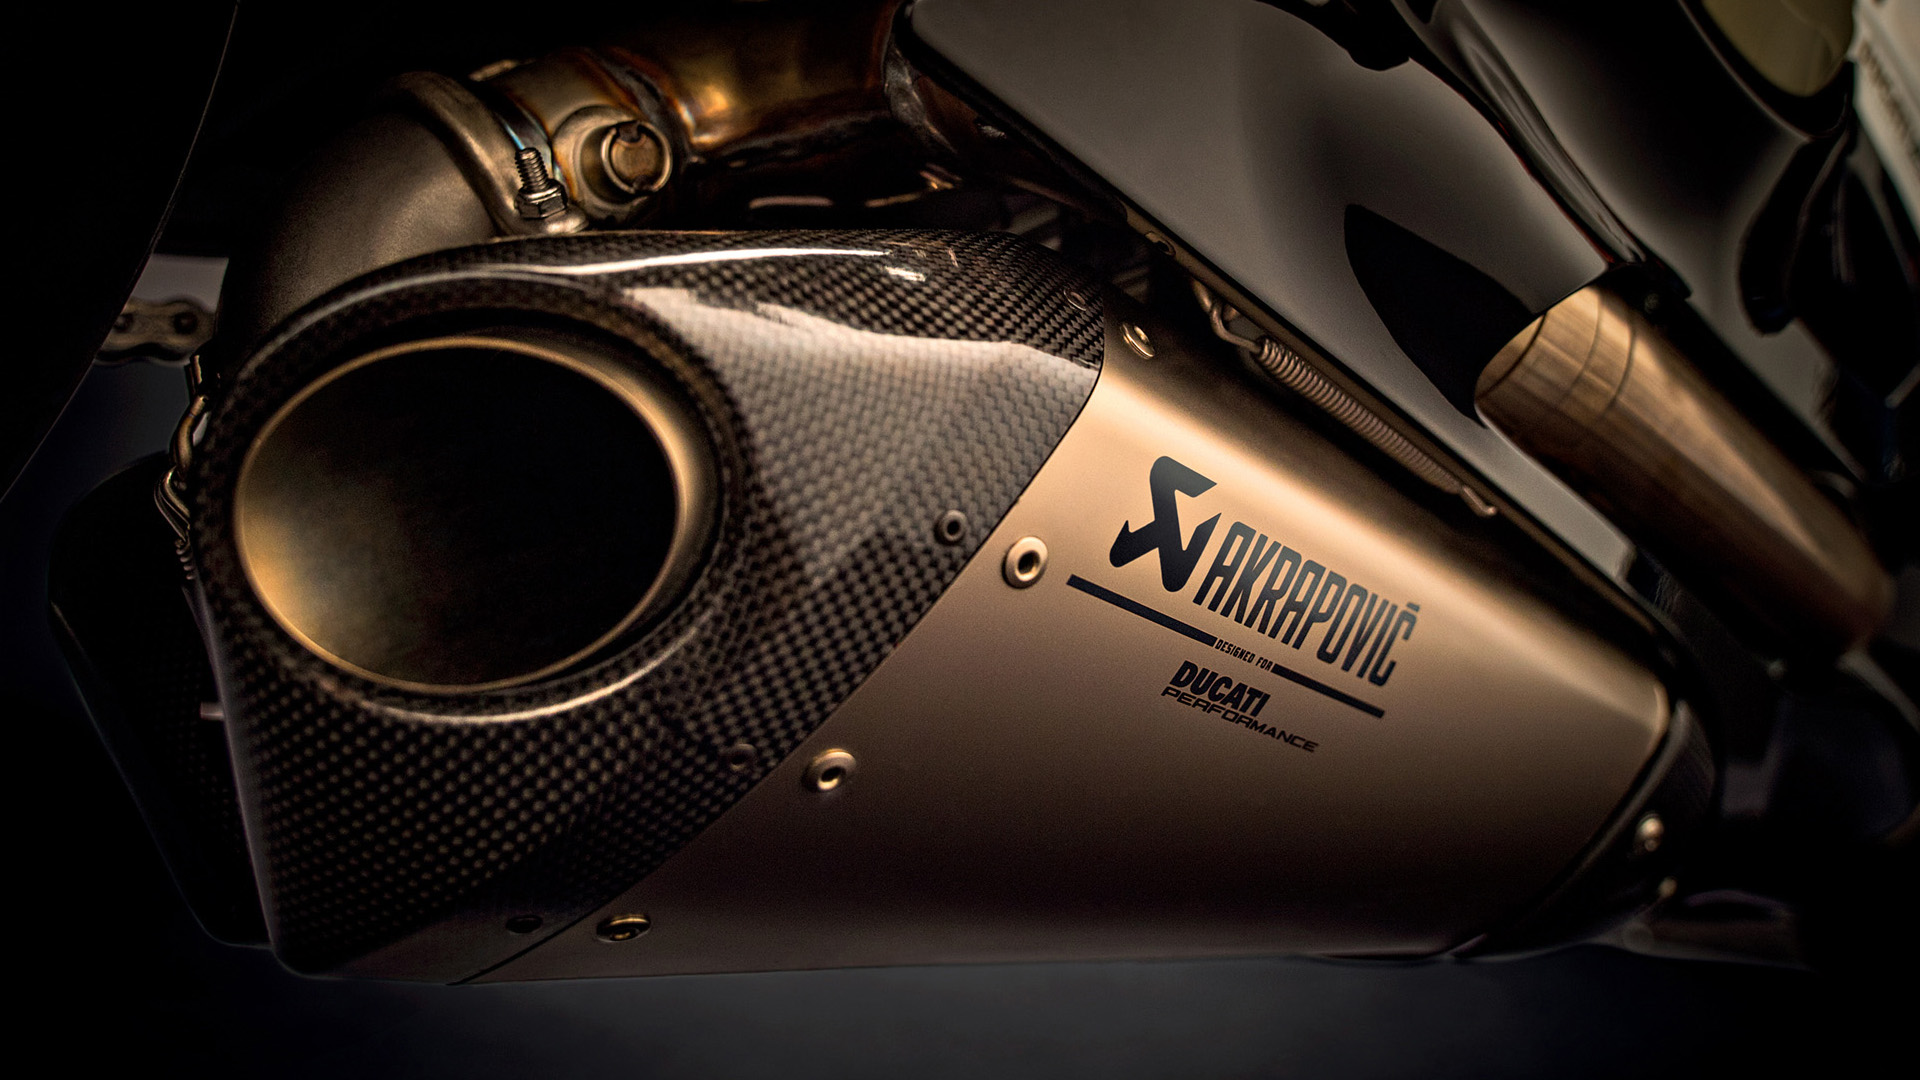 Cool Cars Wallpaper For Mobile Akrapovic Hd Bikes 4k Wallpapers Images Backgrounds